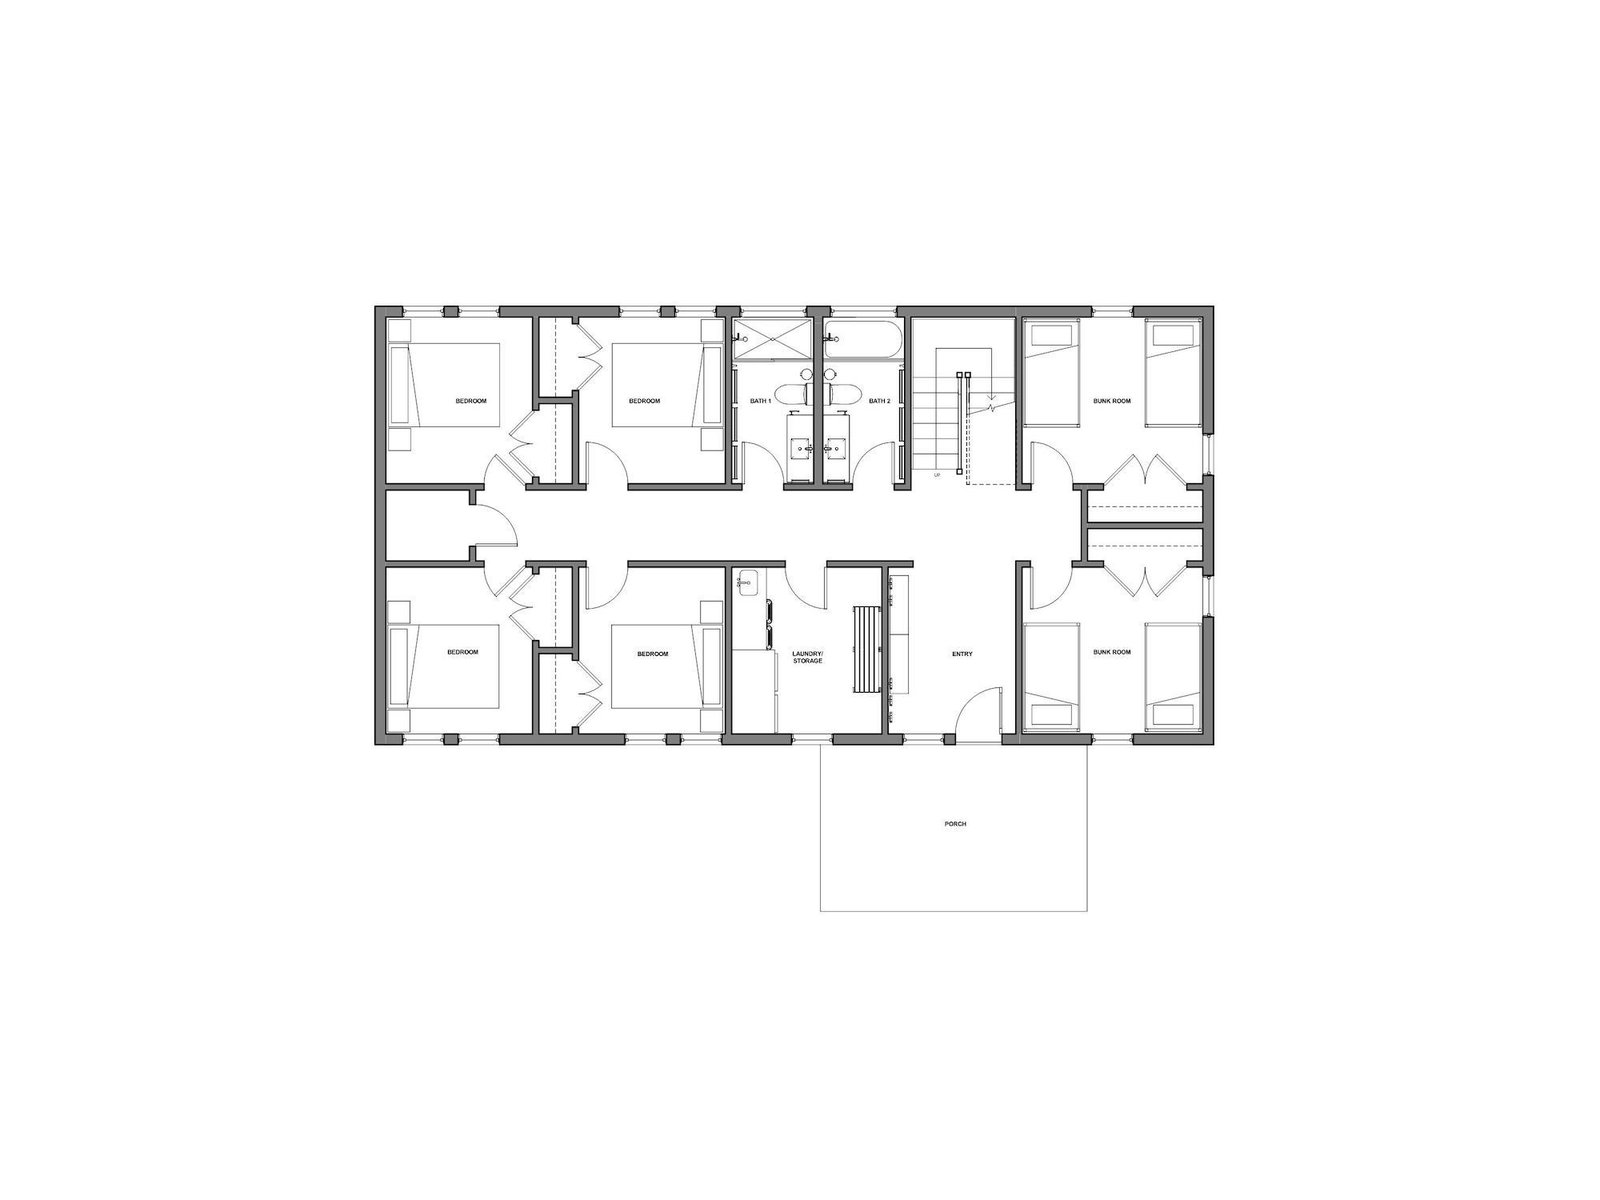 Ground floor plan of Kahshe Lake Cottage by Solares Architecture